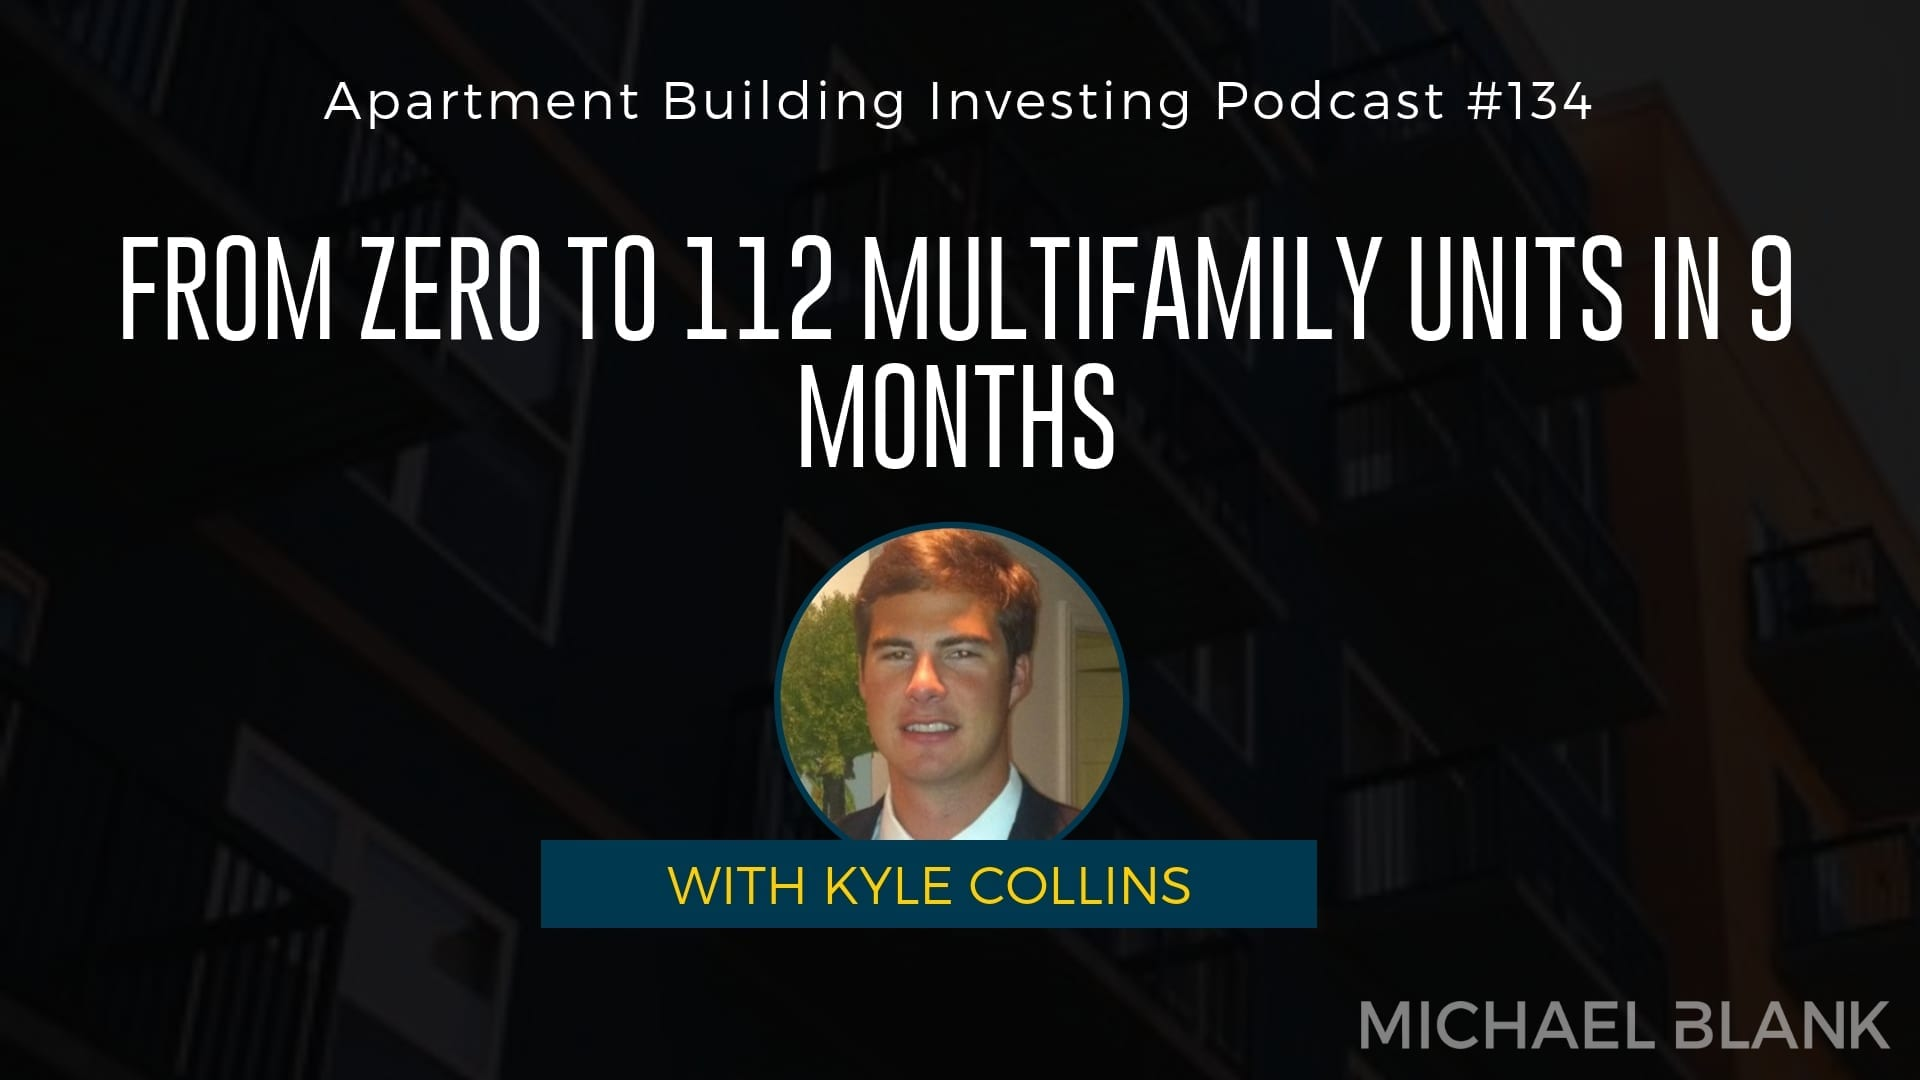 MB 134: From Zero to 112 Multifamily Units in 9 Months – With Kyle Collins